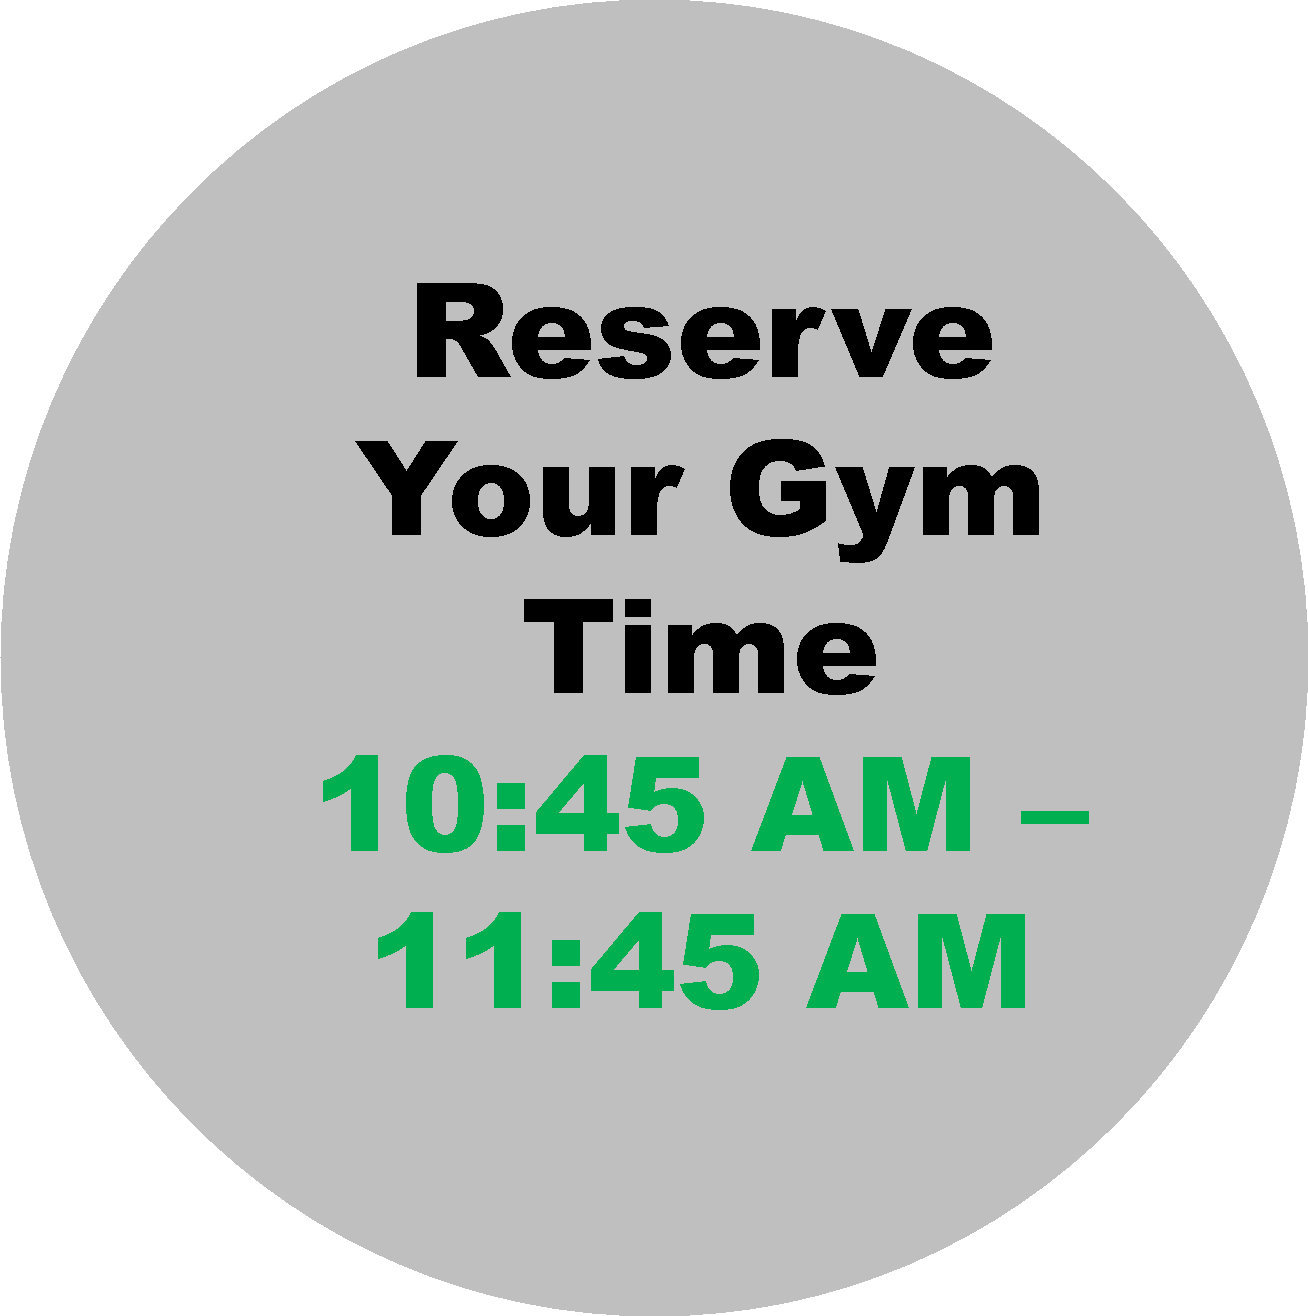 10:45 - 11:45  Workout Hour